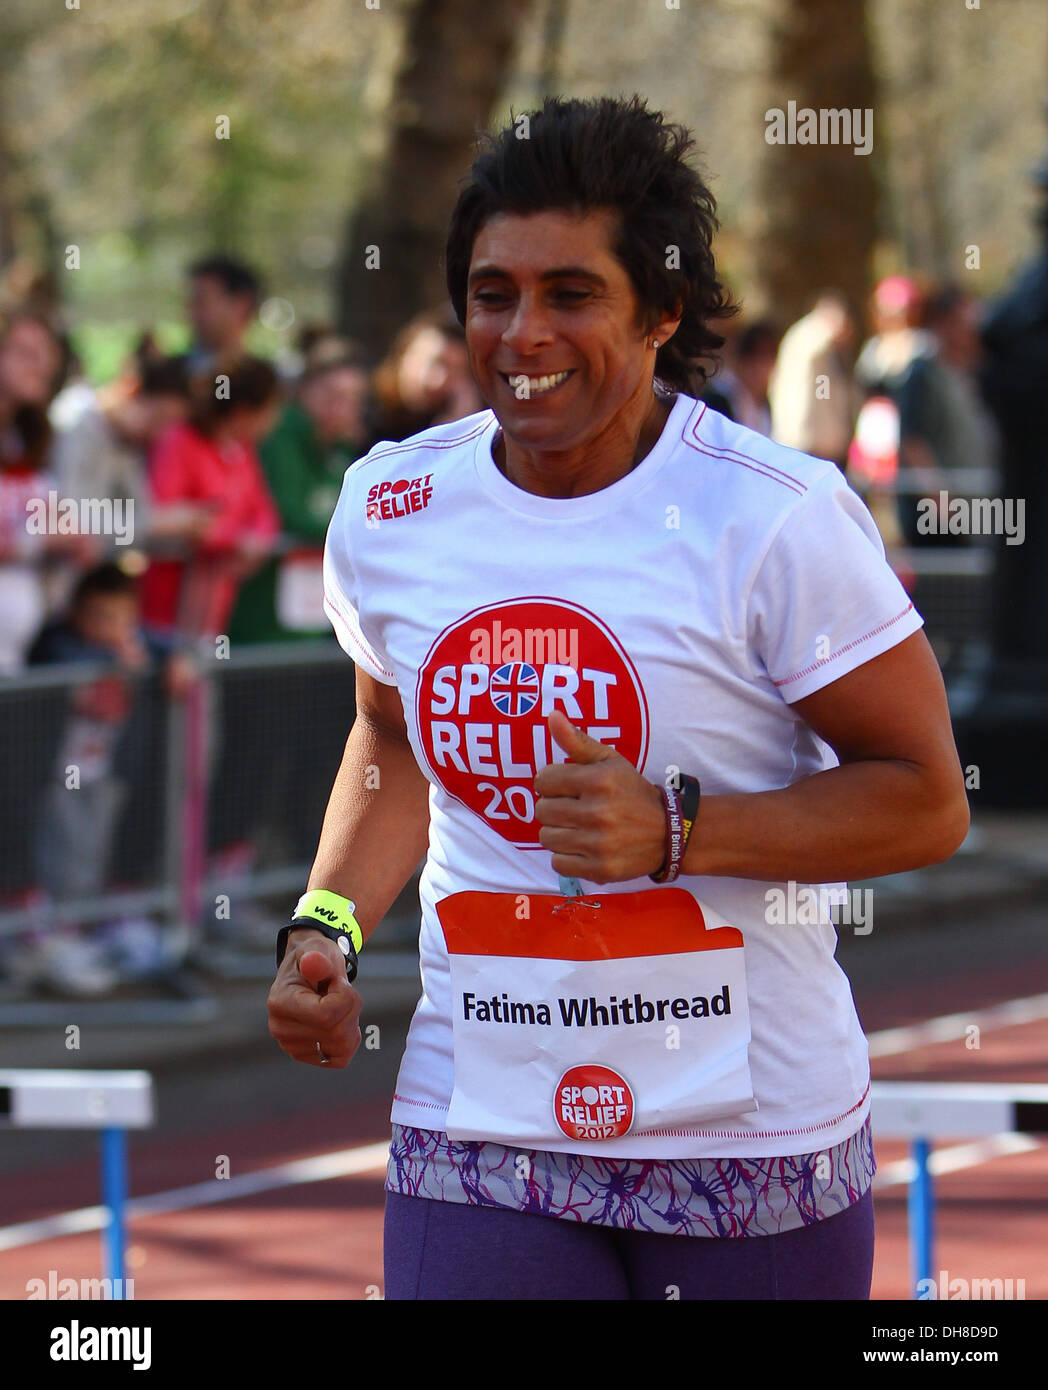 Communication on this topic: Myra Kinch, fatima-whitbread-2-olympic-medals-in-javelin/